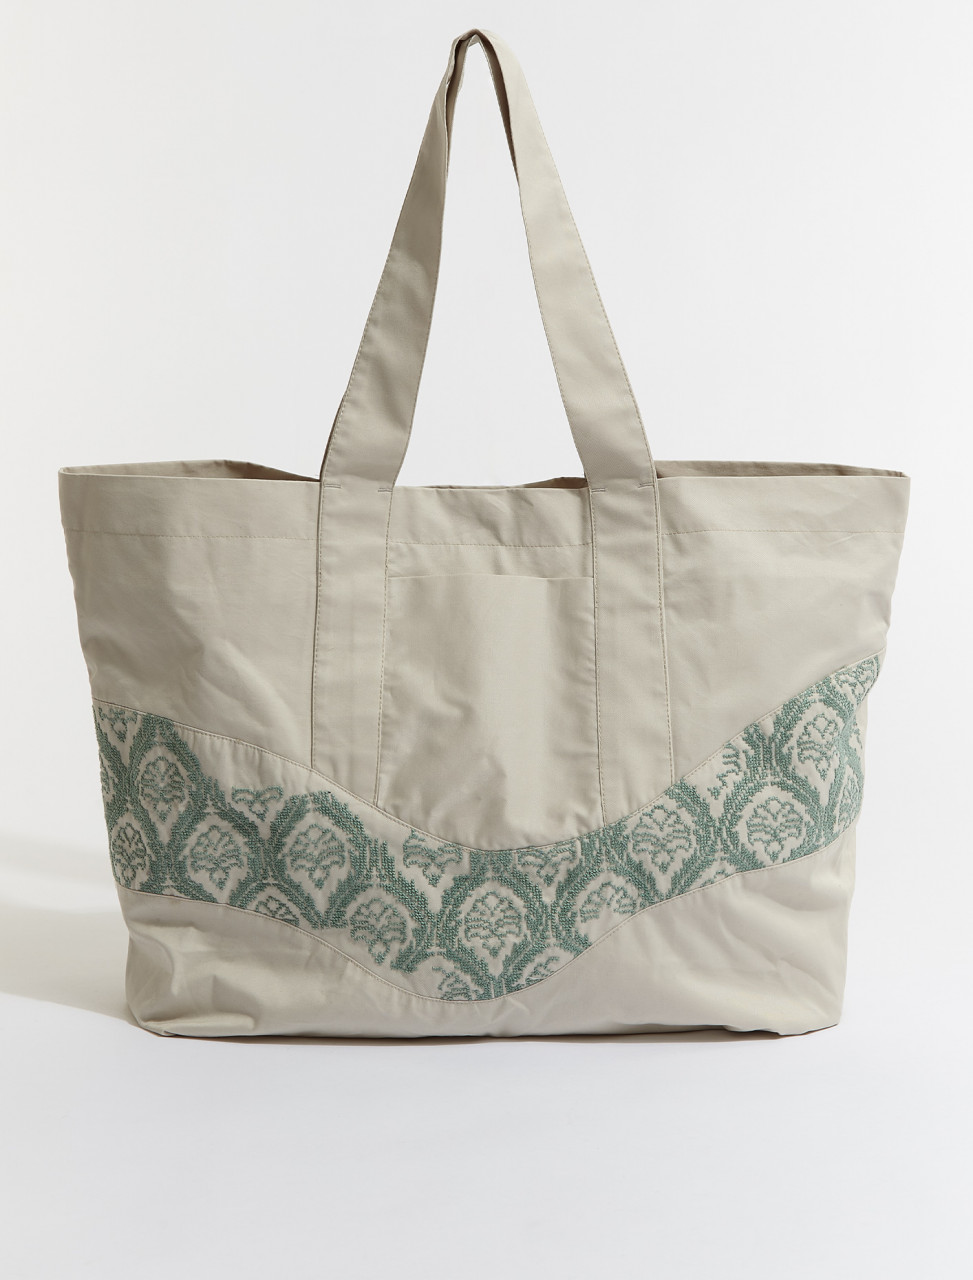 273-SS20-SCTBW001 ADISH SAWSANAS TOTE BAG EXCLUSIVE TO VOO STORE OFF WHITE